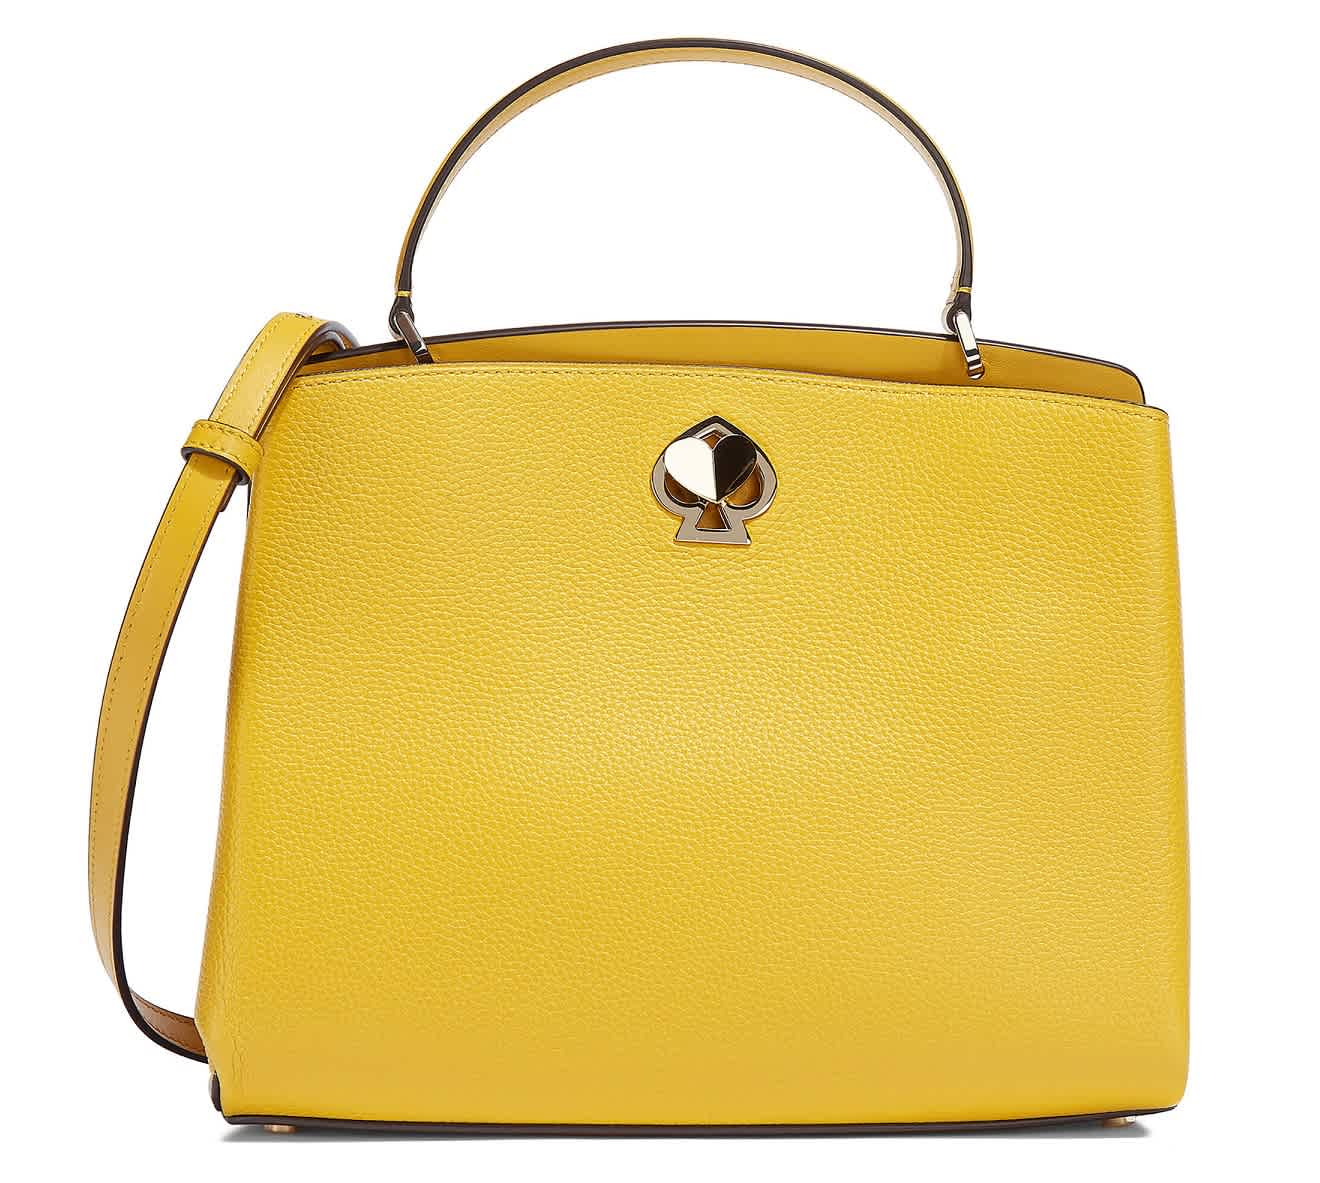 Kate Spade LADIES ROMY MEDIUM SATCHEL IN YELLOW